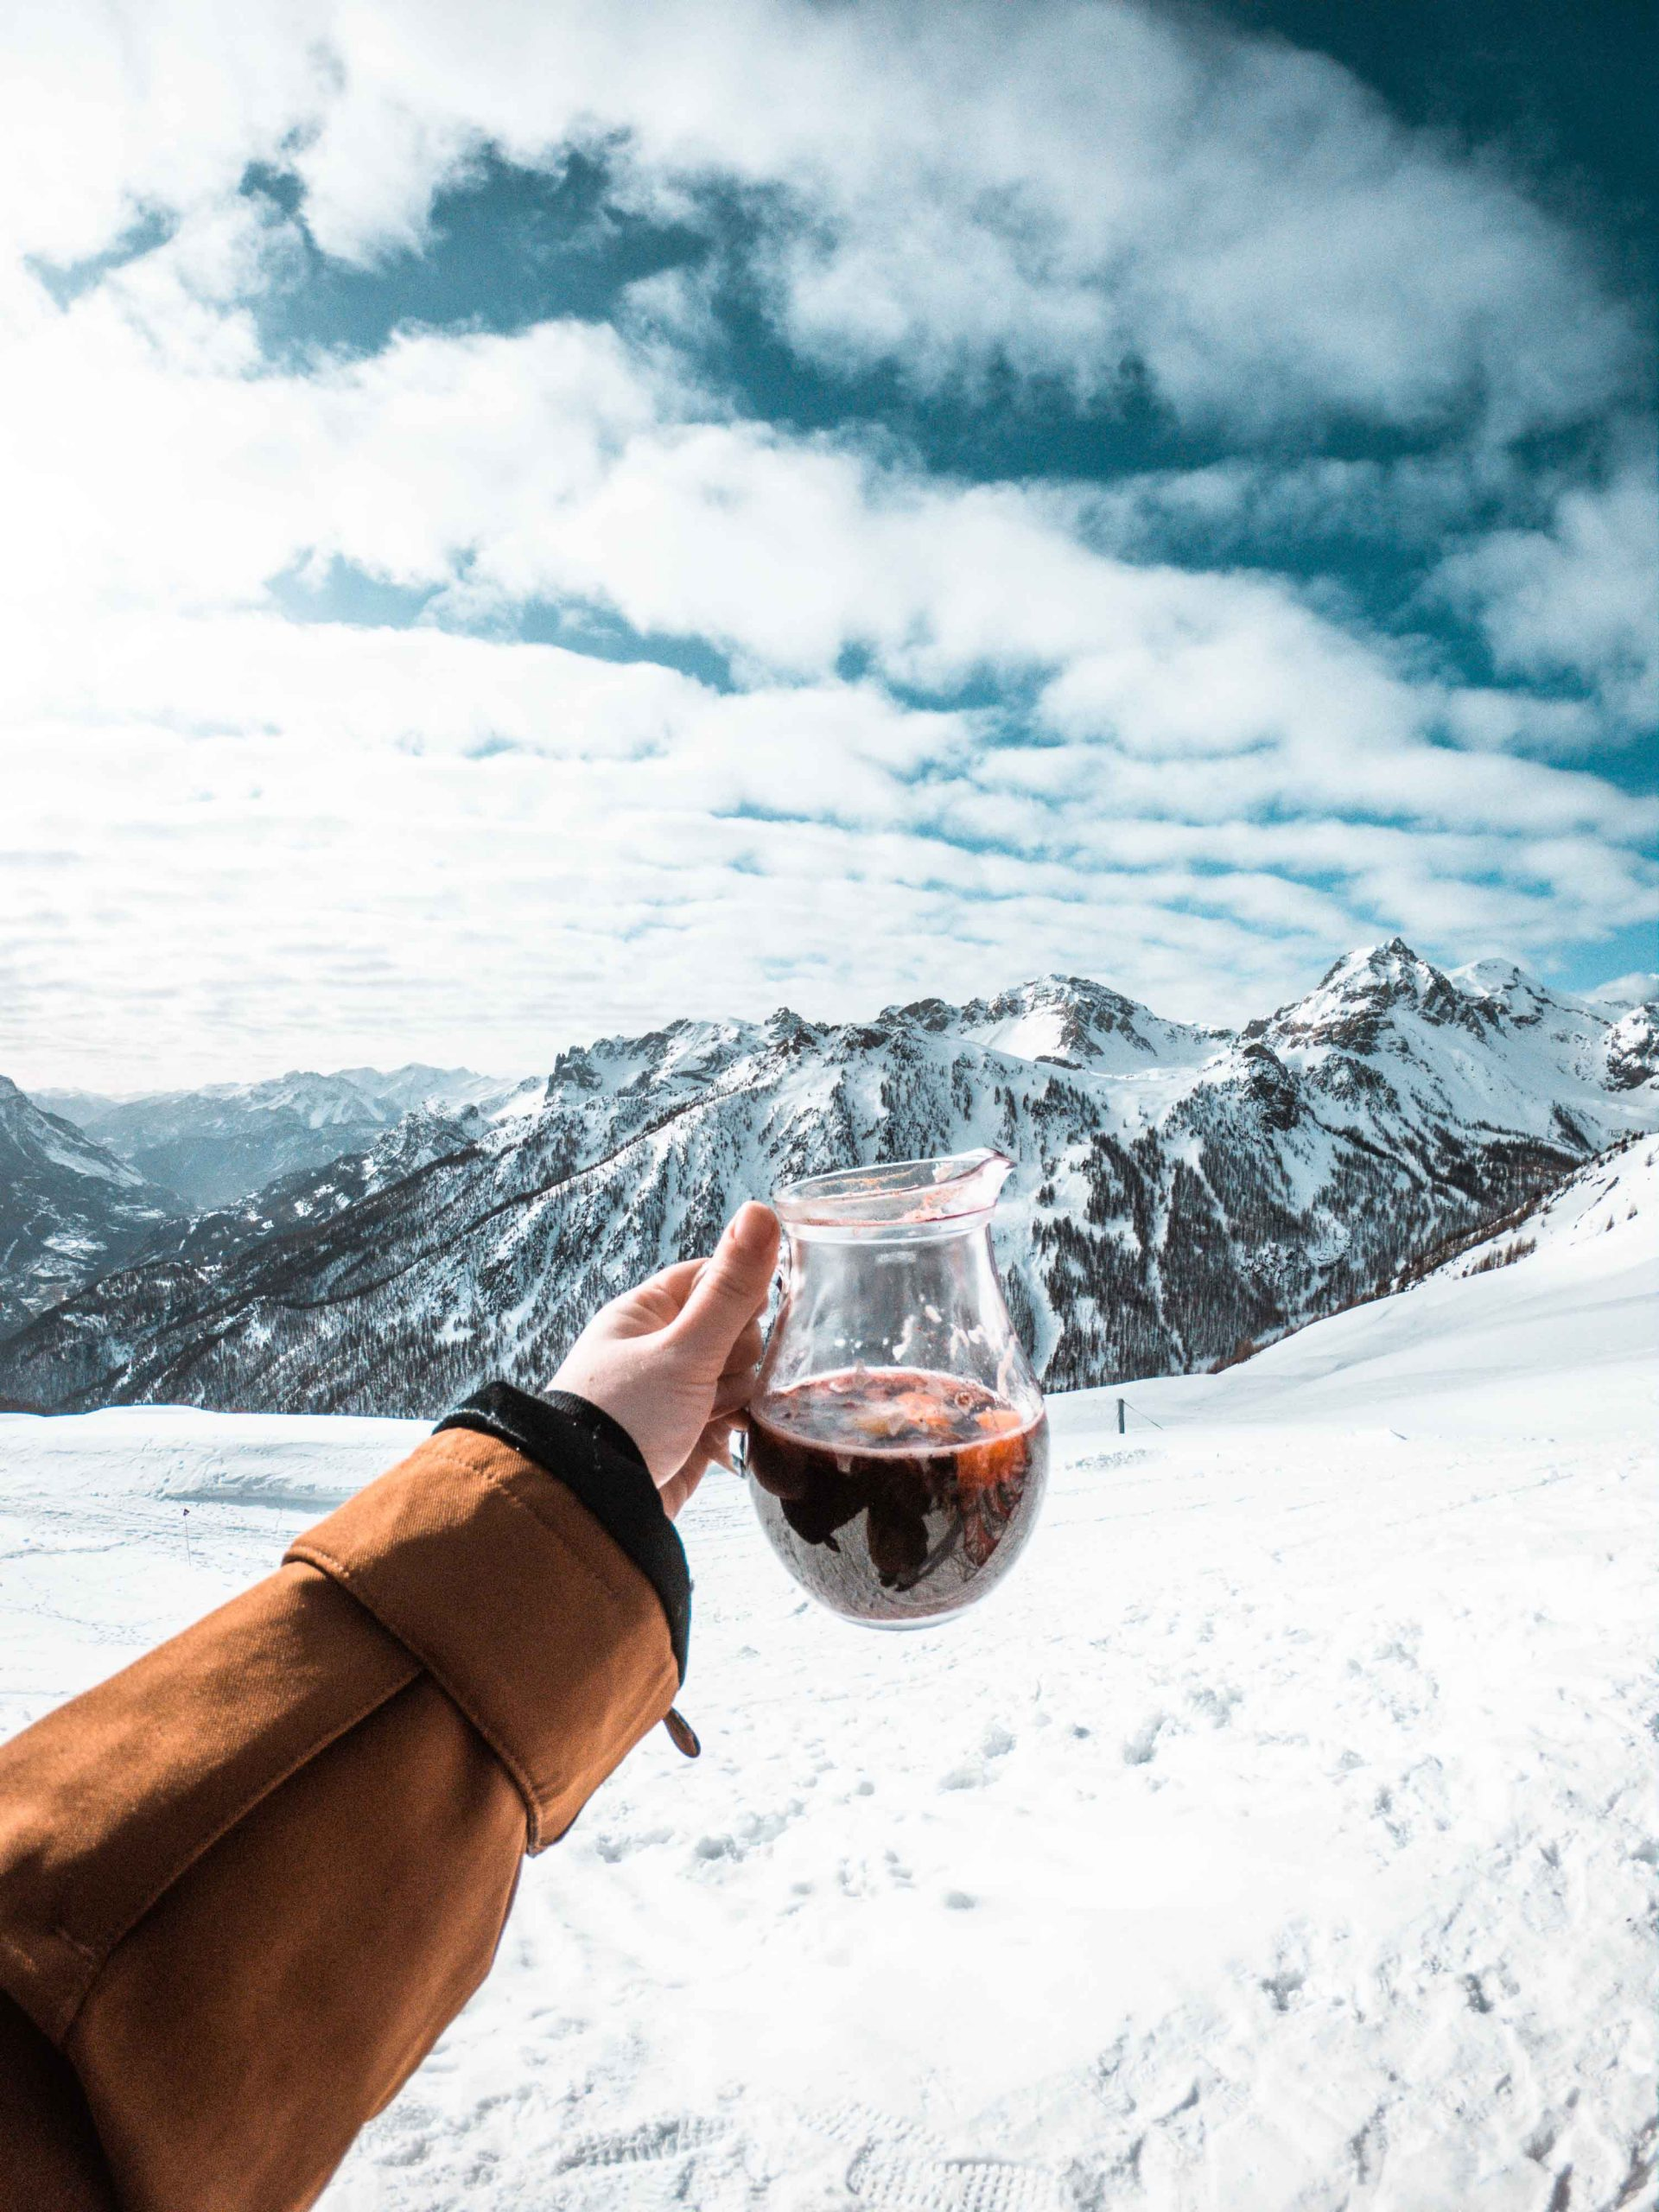 Grace's hand holding a jug of mulled wine against a backdrop of the serre chevalier mountains.